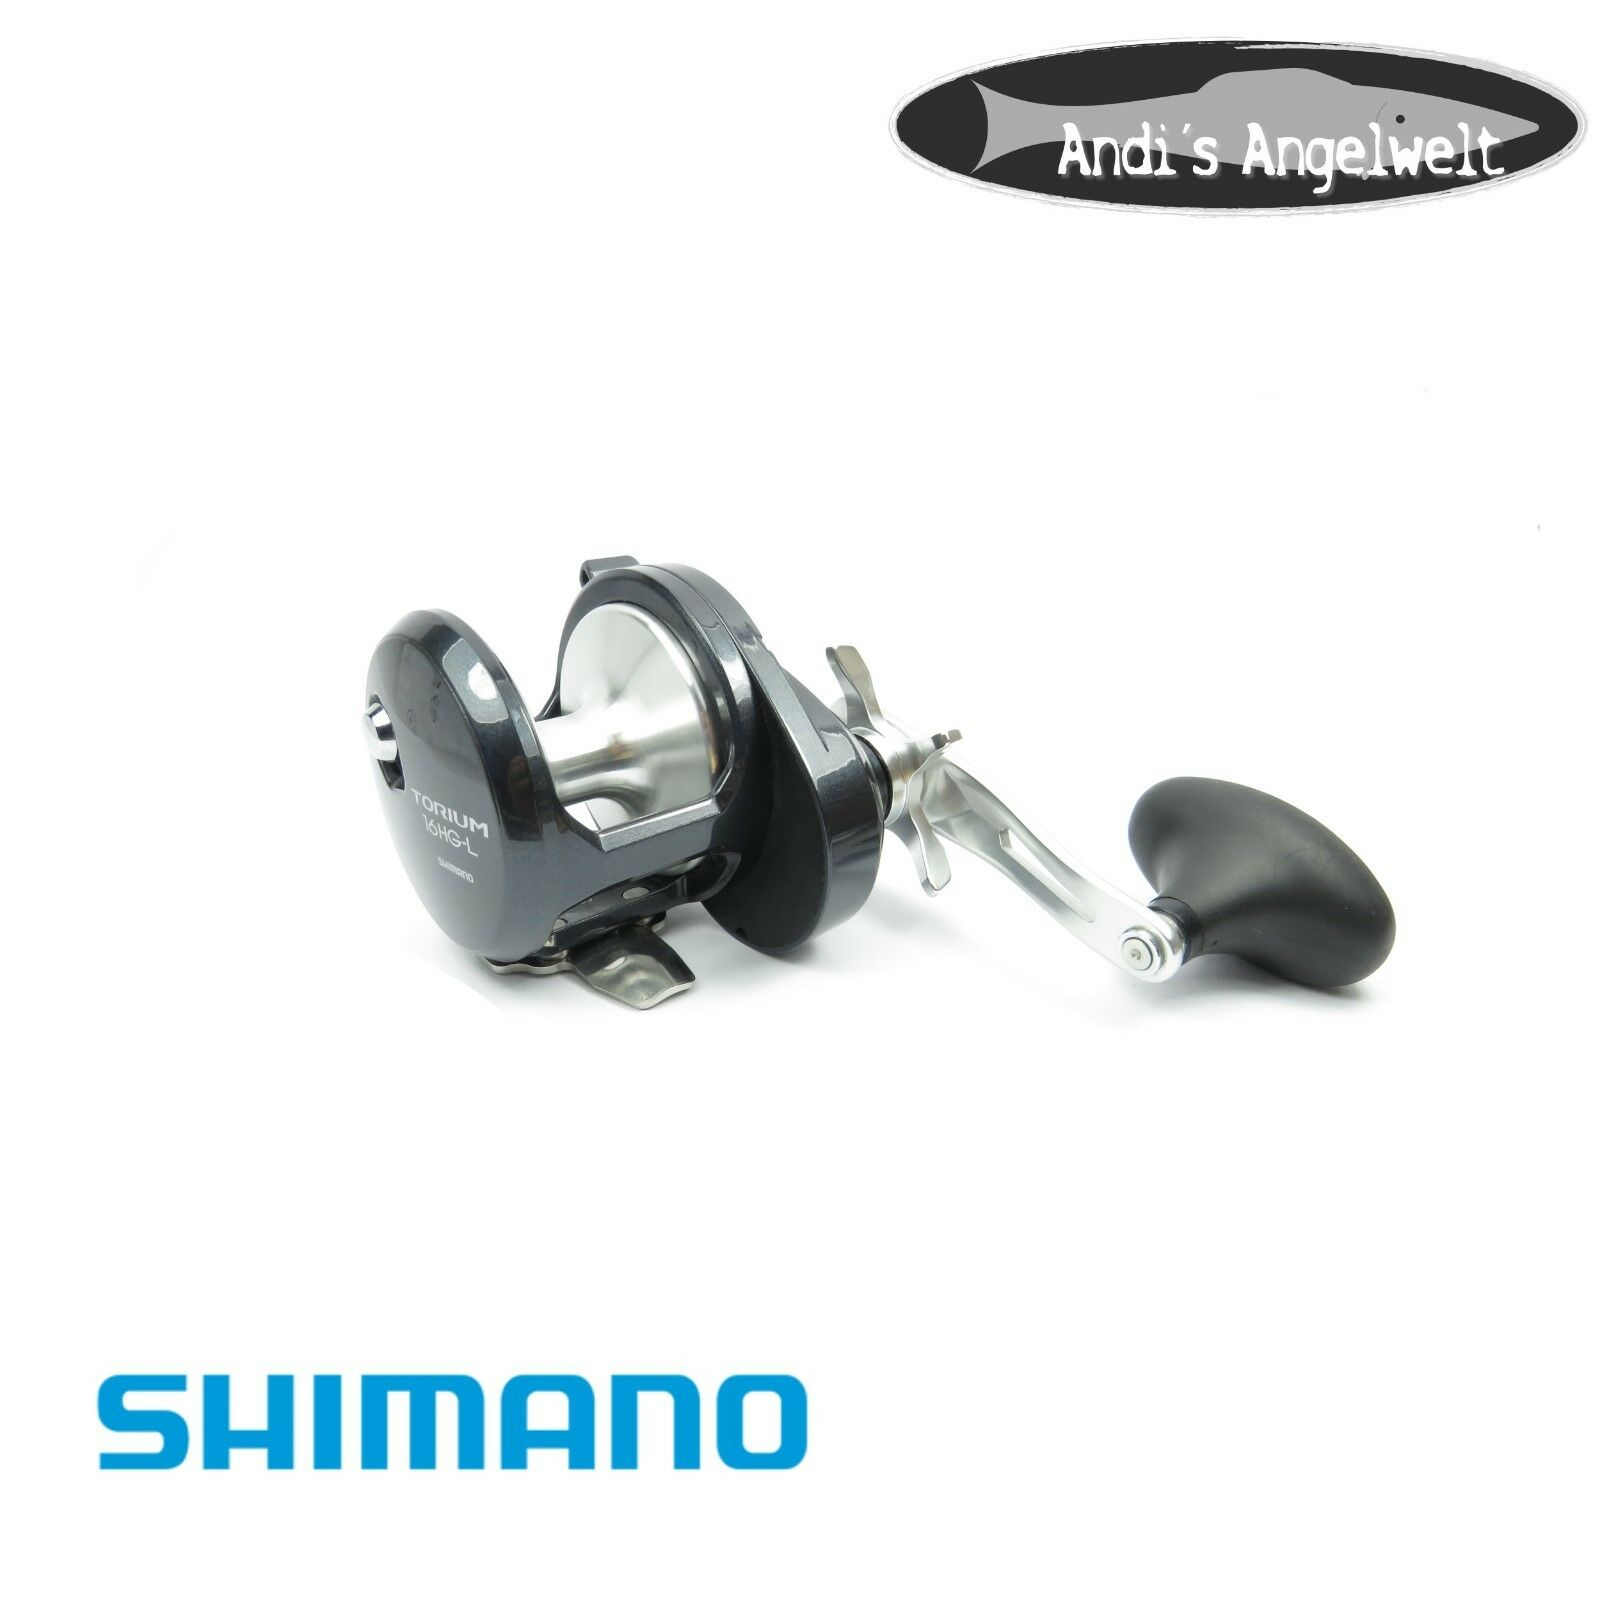 Shimano Saumon-Various Größes and Models-Multi-role